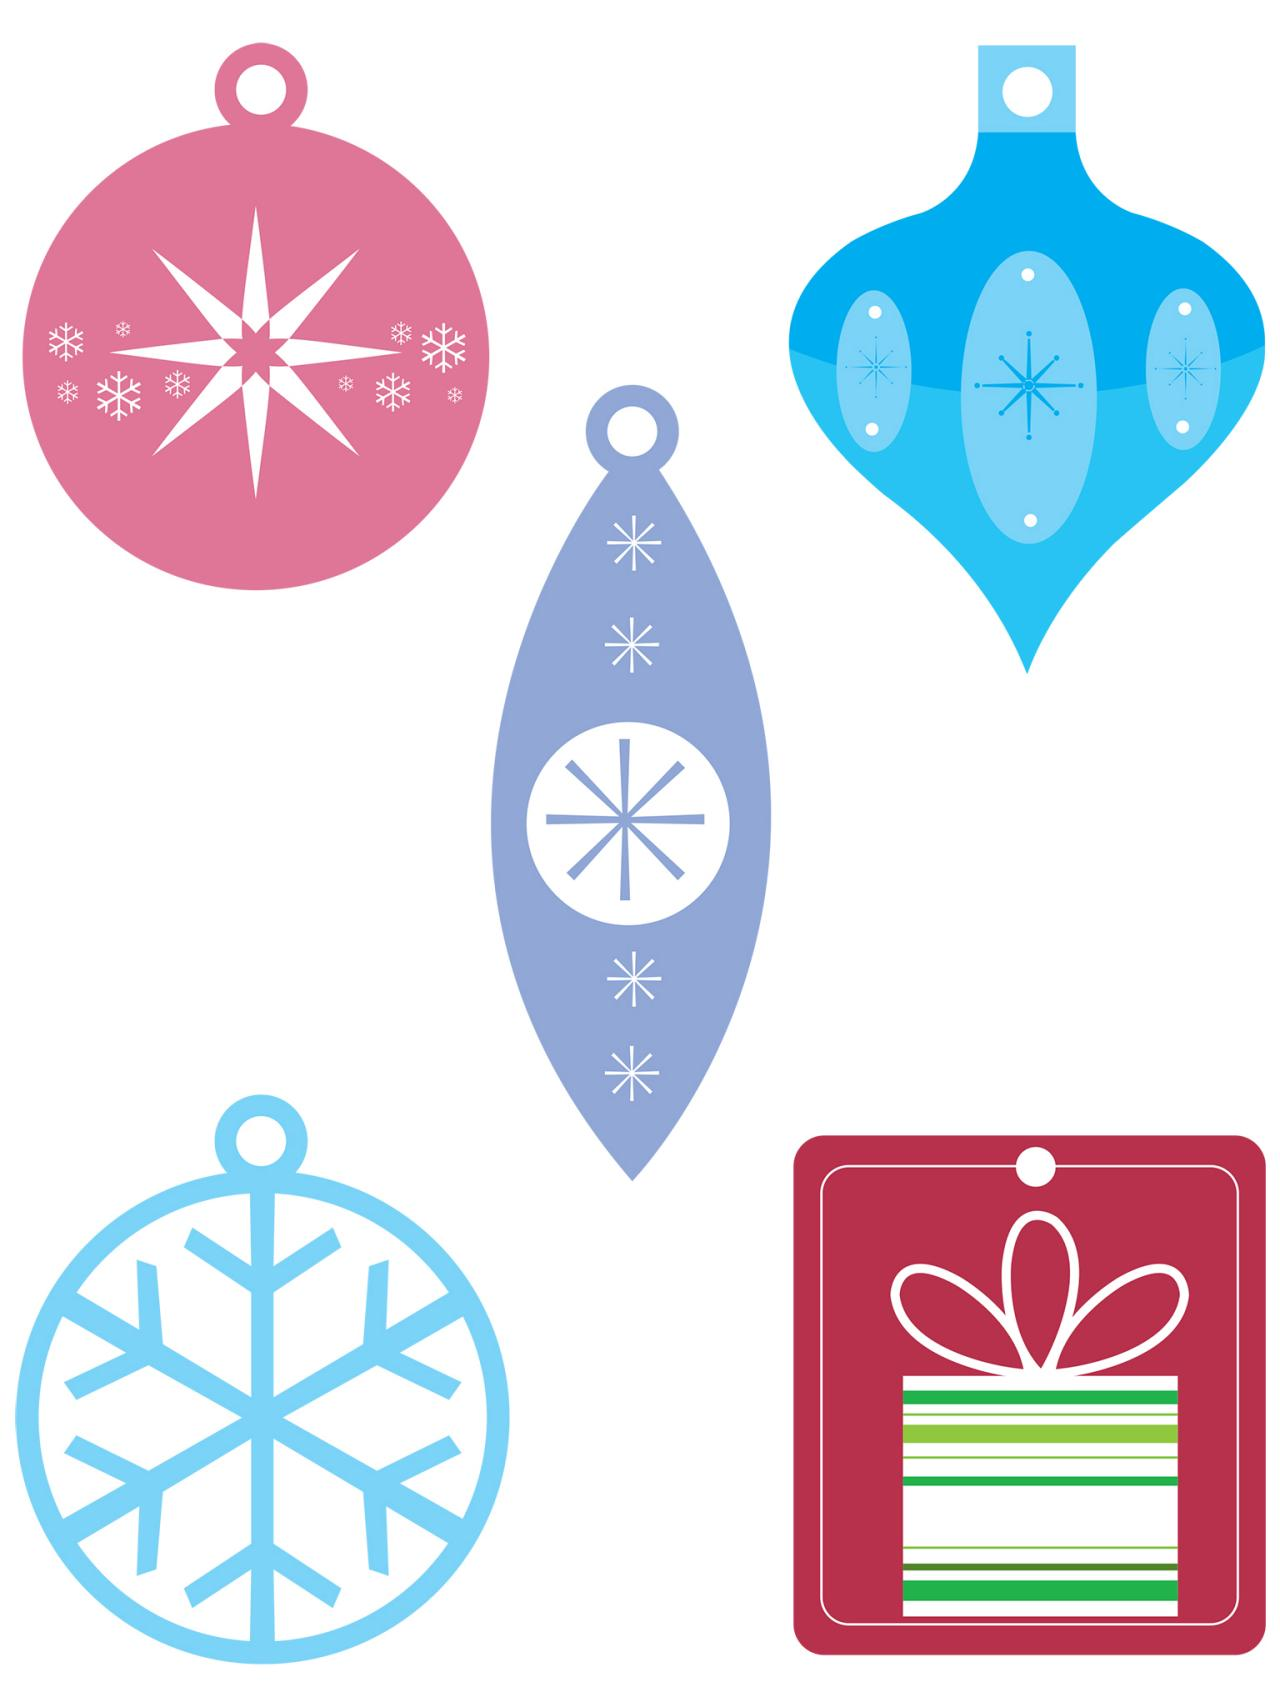 Free Christmas Templates: Printable Gift Tags, Cards, Crafts ...